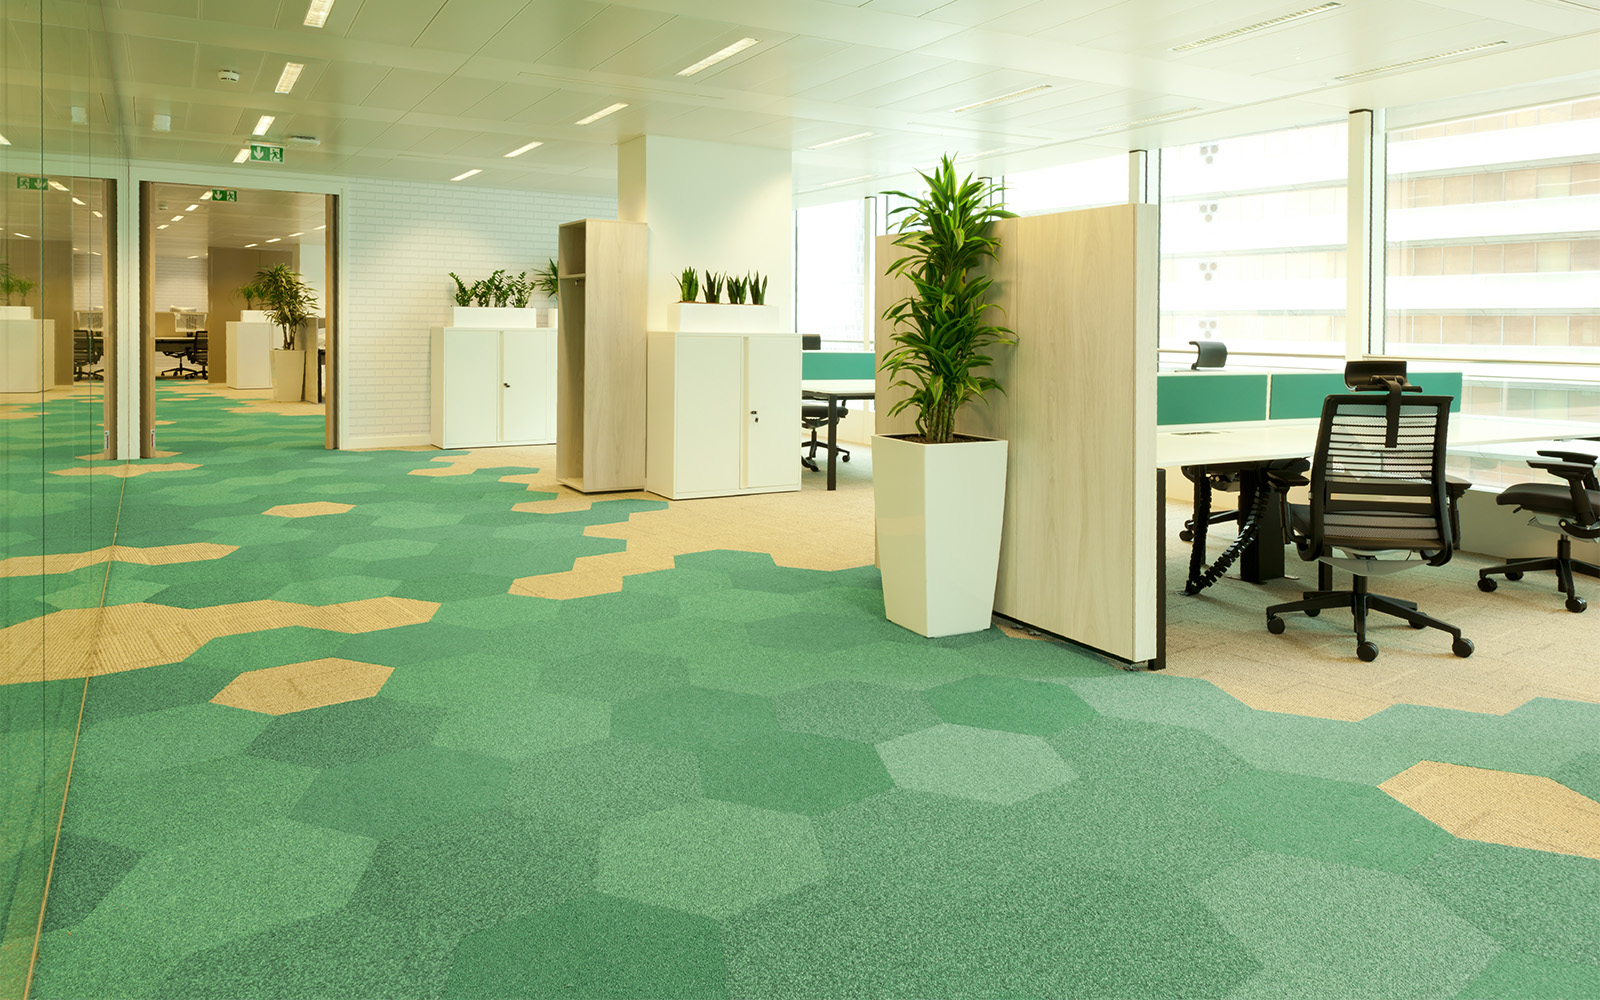 Hexagon-shaped-carpet-tiles-in-an-office